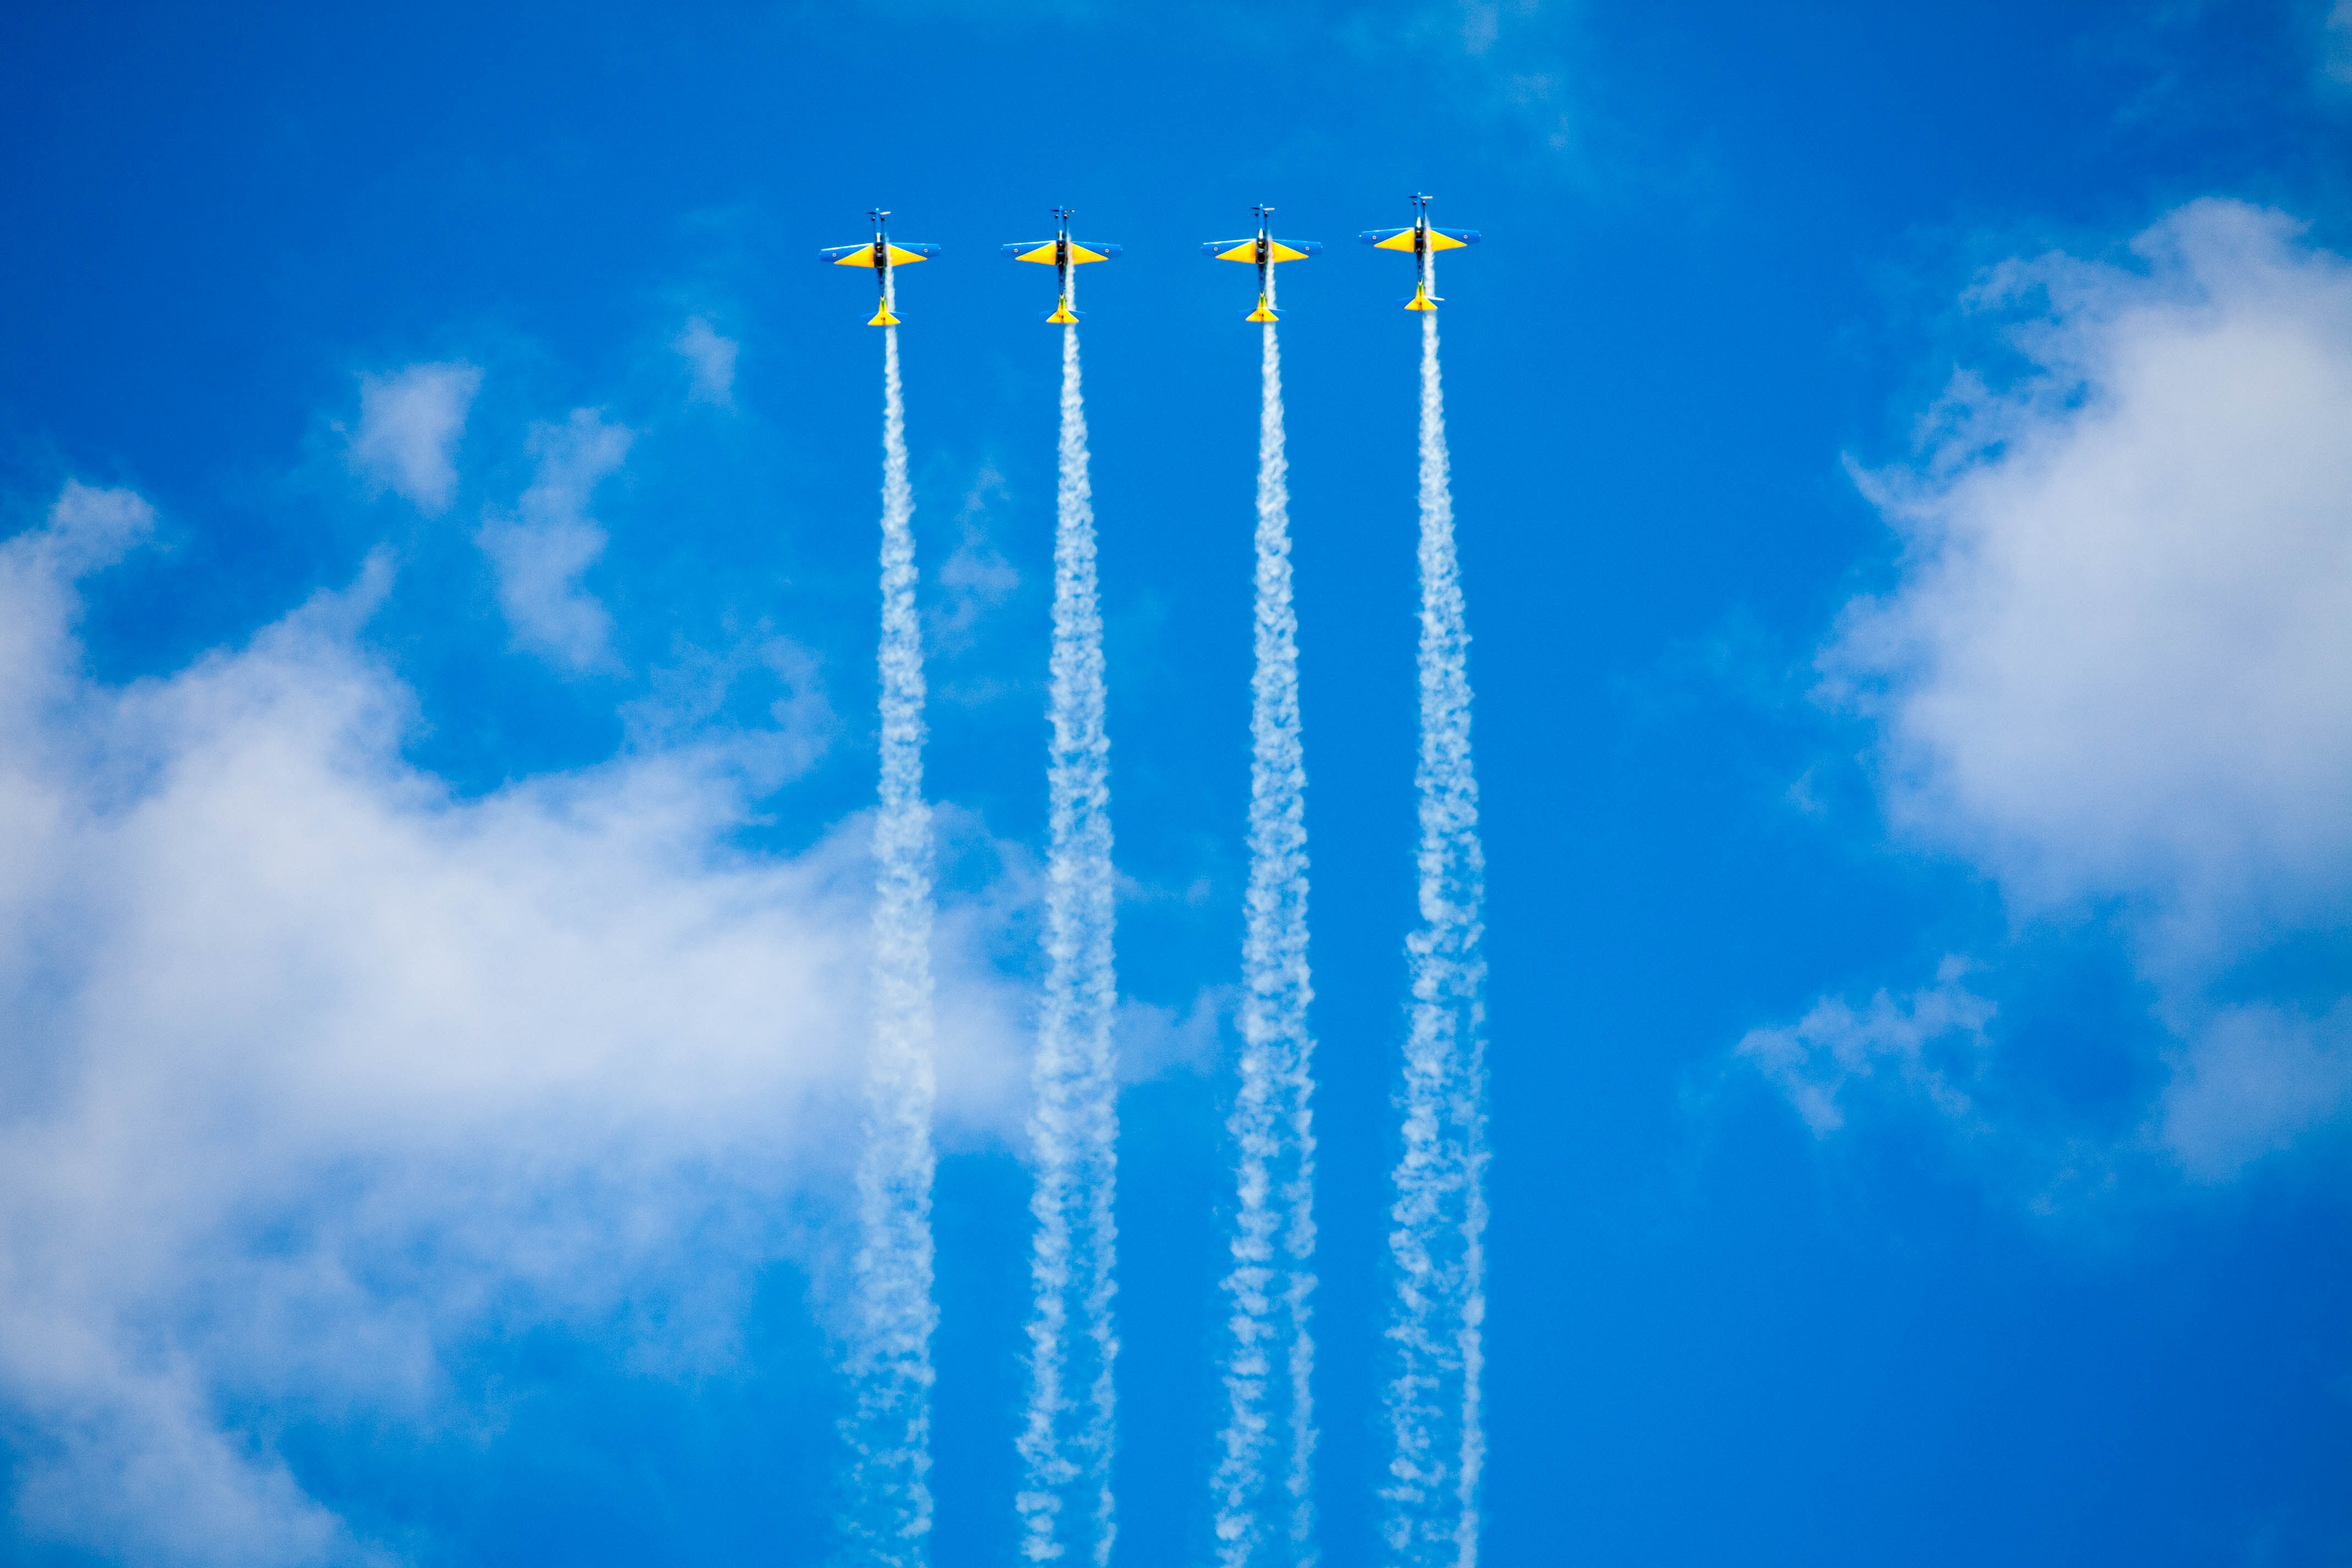 4 planes that fly together